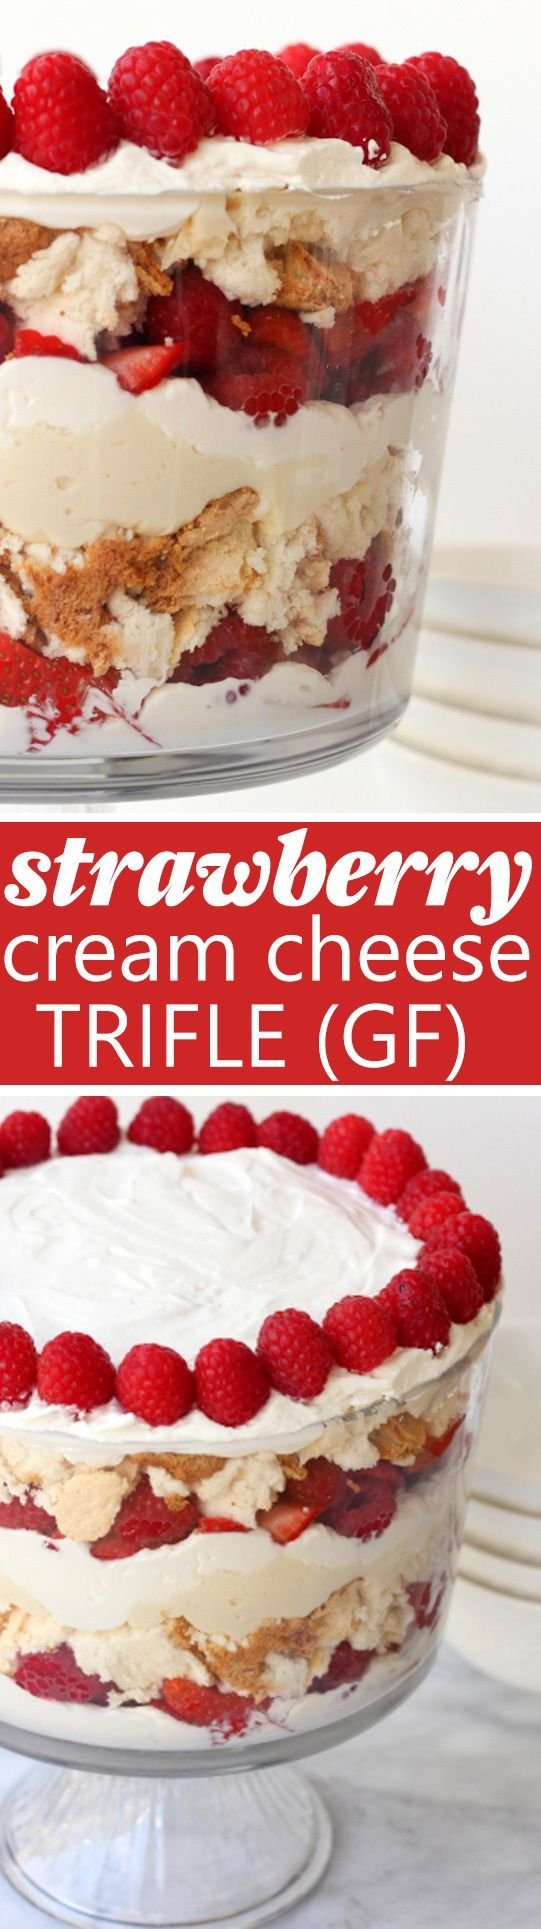 Strawberry Cream Cheese Trifle (Gluten-Free!) Layers of gluten-free angel food cake with fresh berries, whipped cream and cream cheese. Everyone always asks for this recipe!